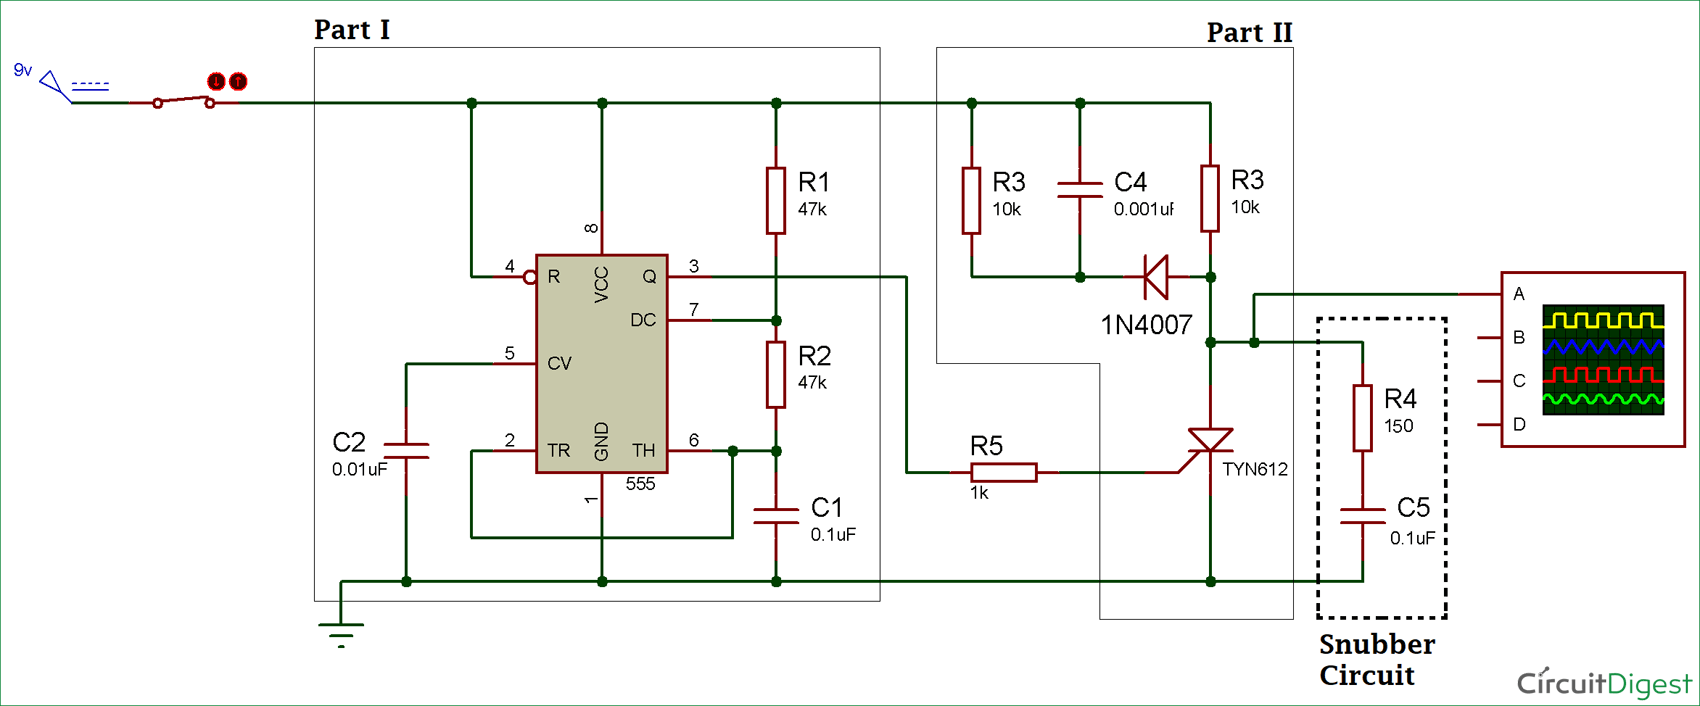 hight resolution of thyristor switching using snubber circuit snubbernetworkenergysaver powersupplycircuit circuit diagram